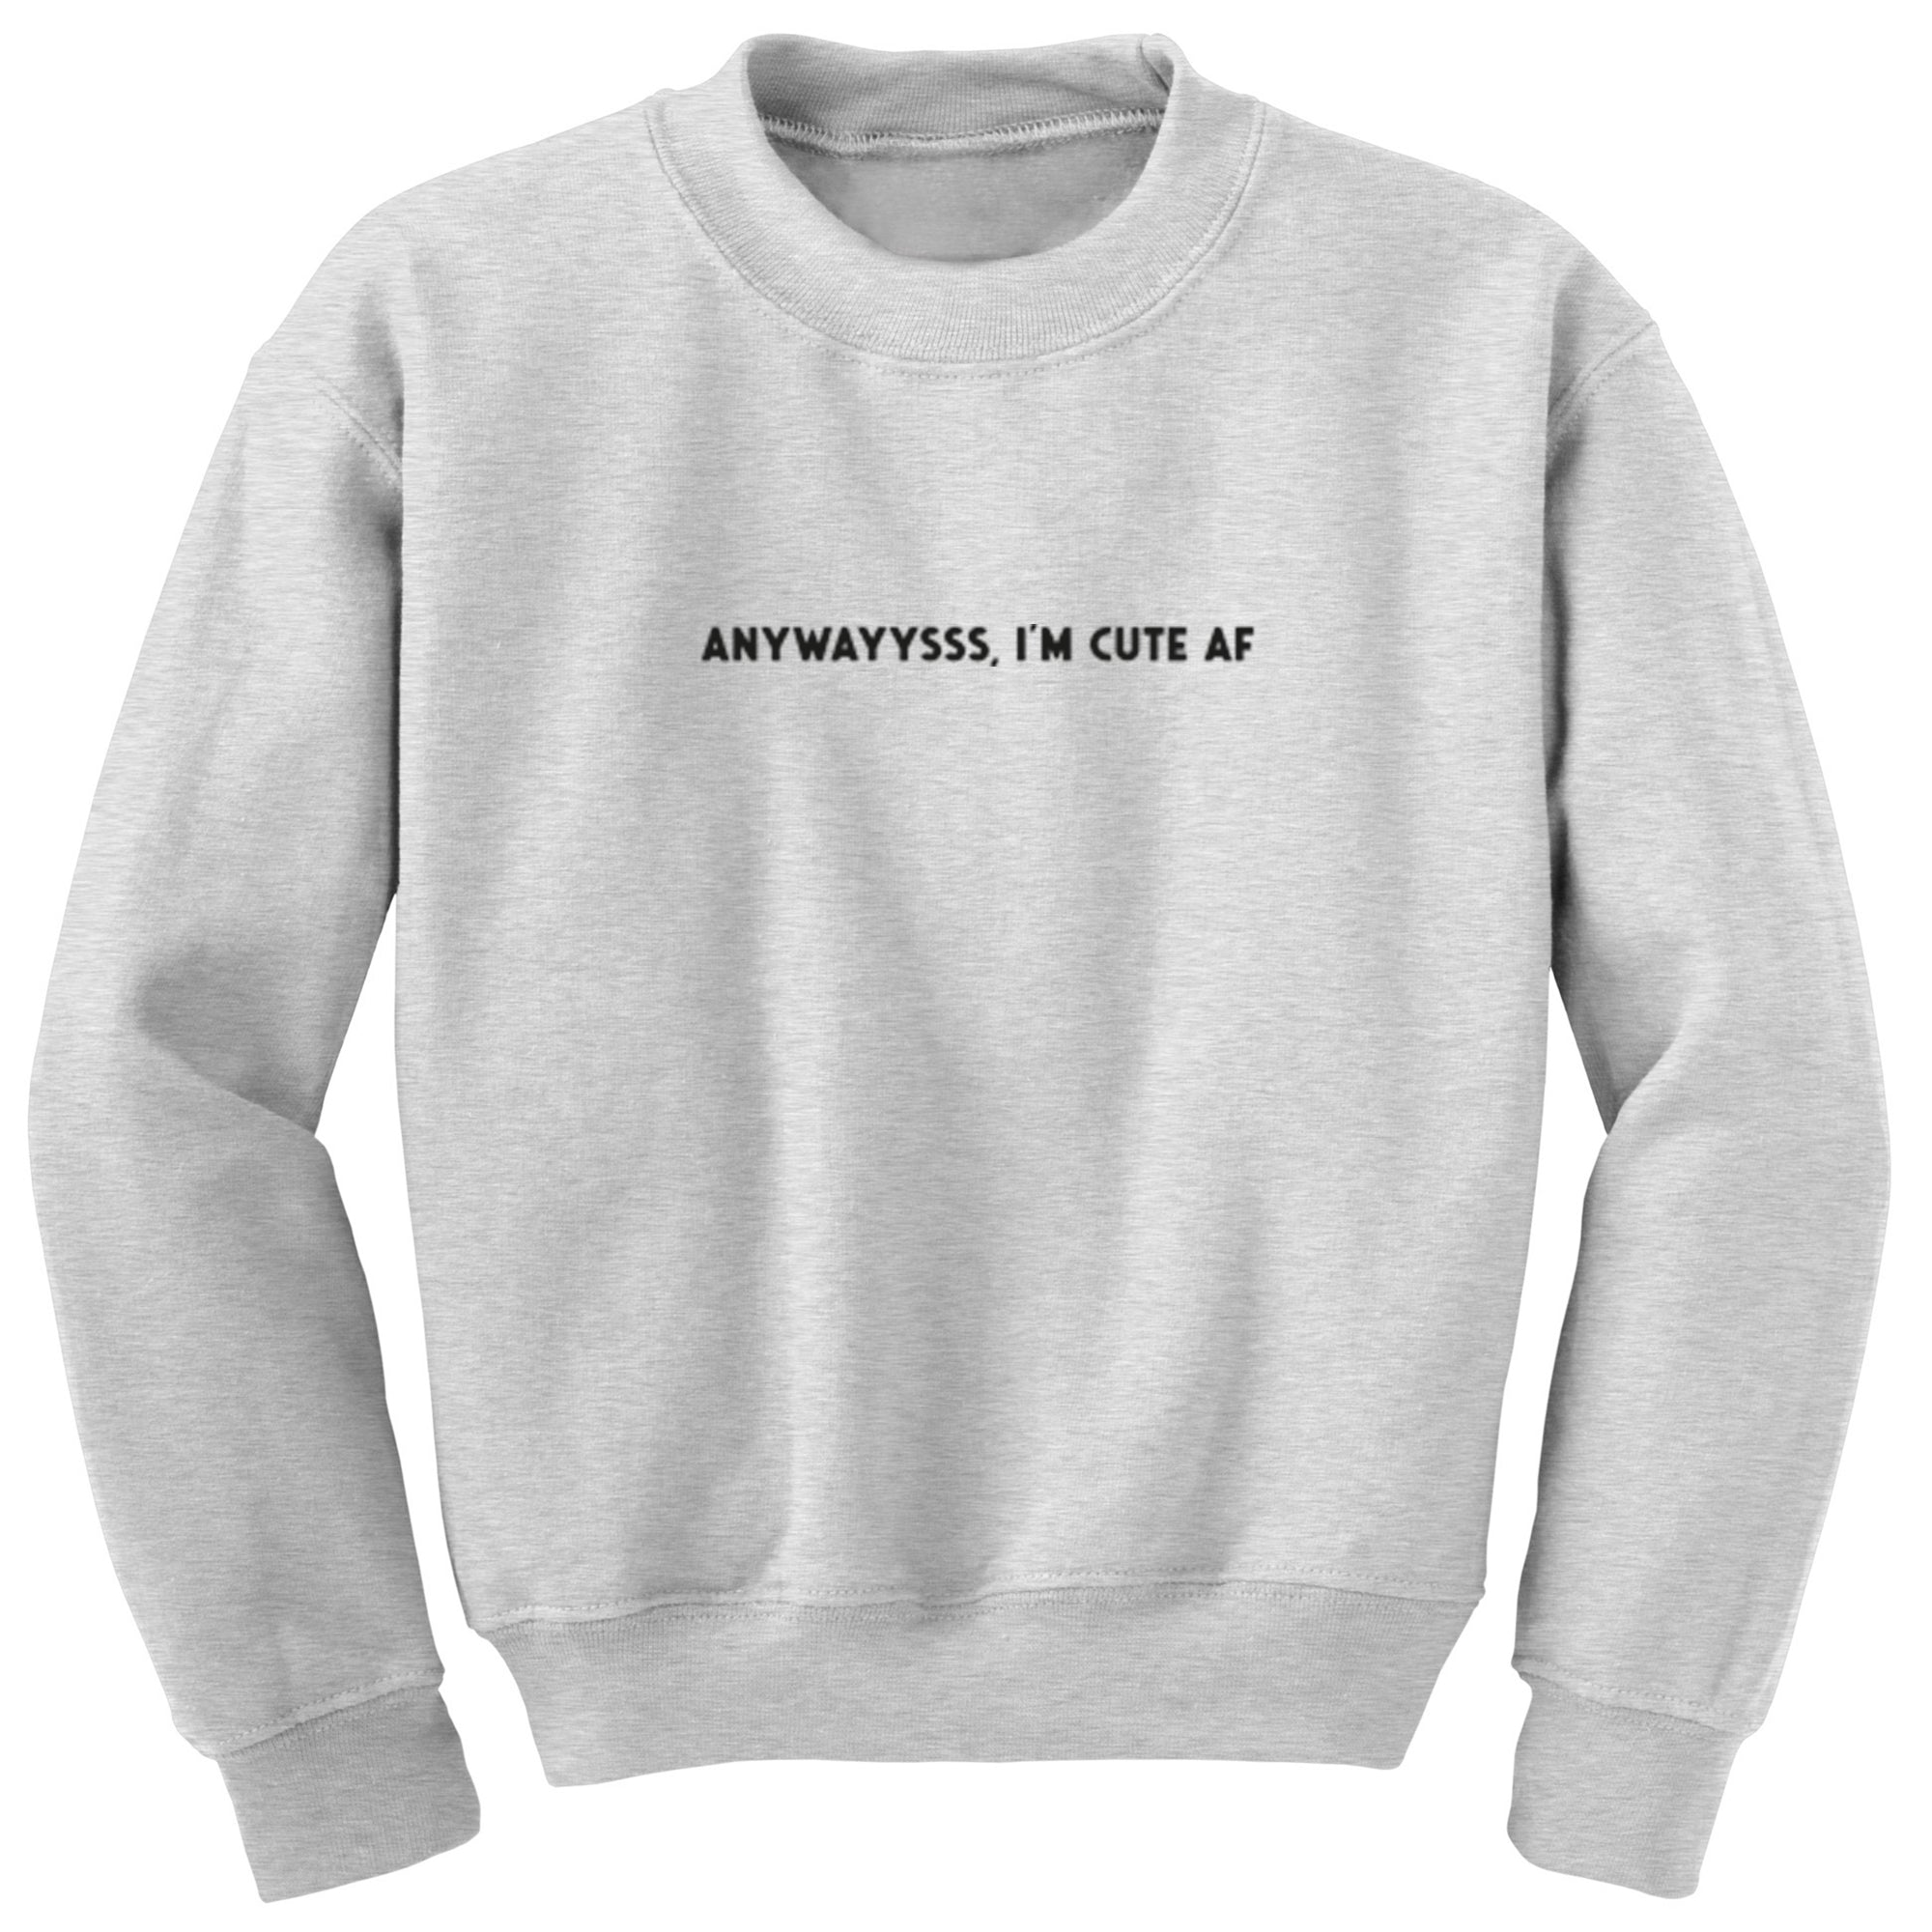 Anyways I'm Cute Af Unisex Jumper S1137 - Illustrated Identity Ltd.